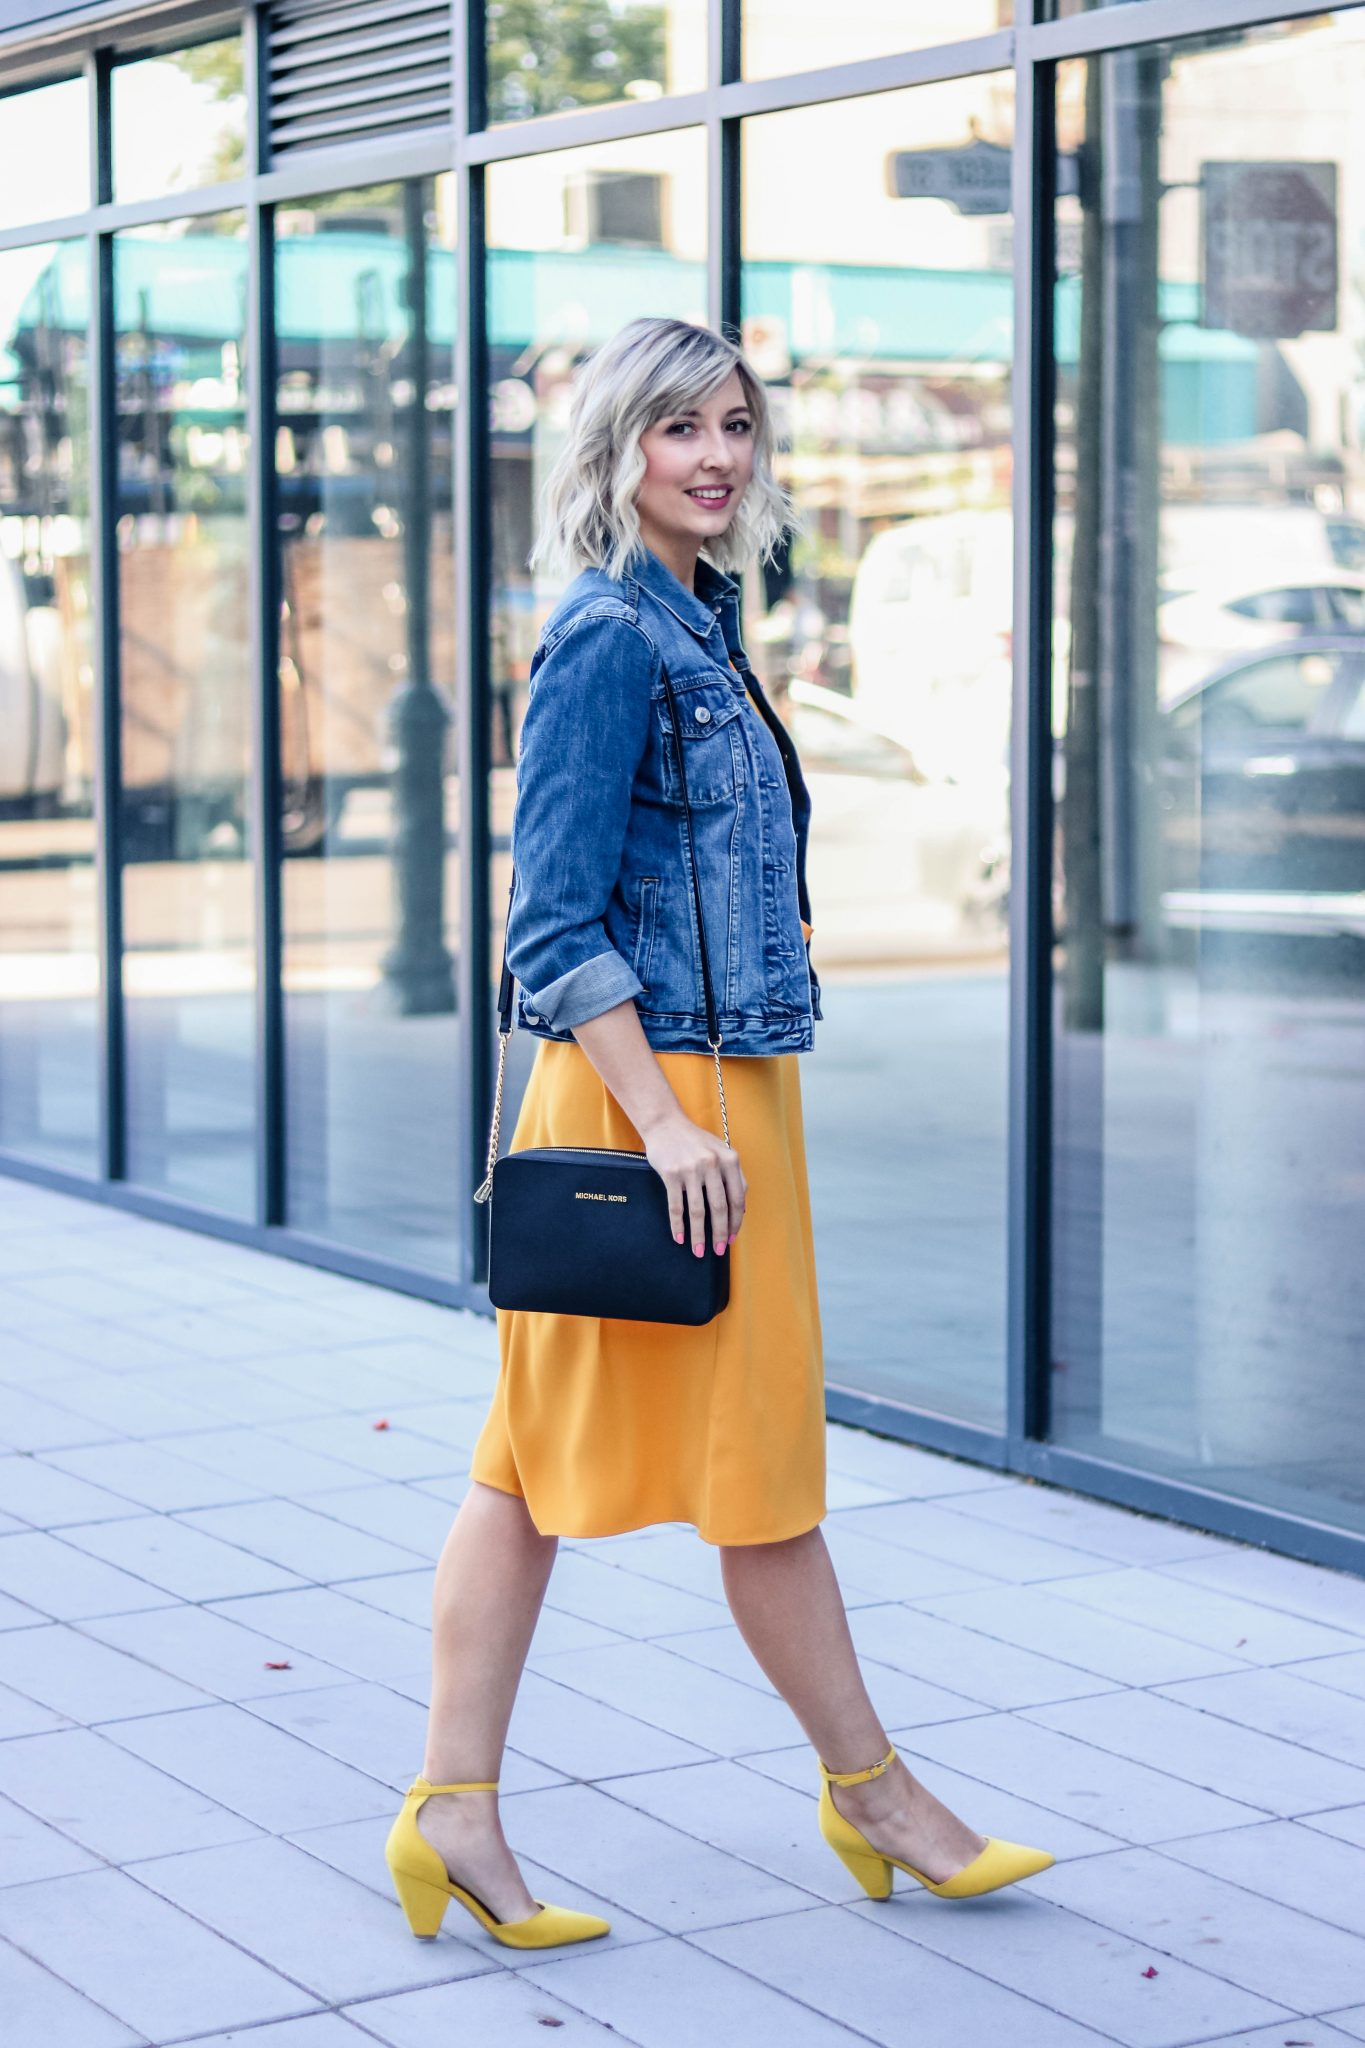 5 tips to style a denim jacket